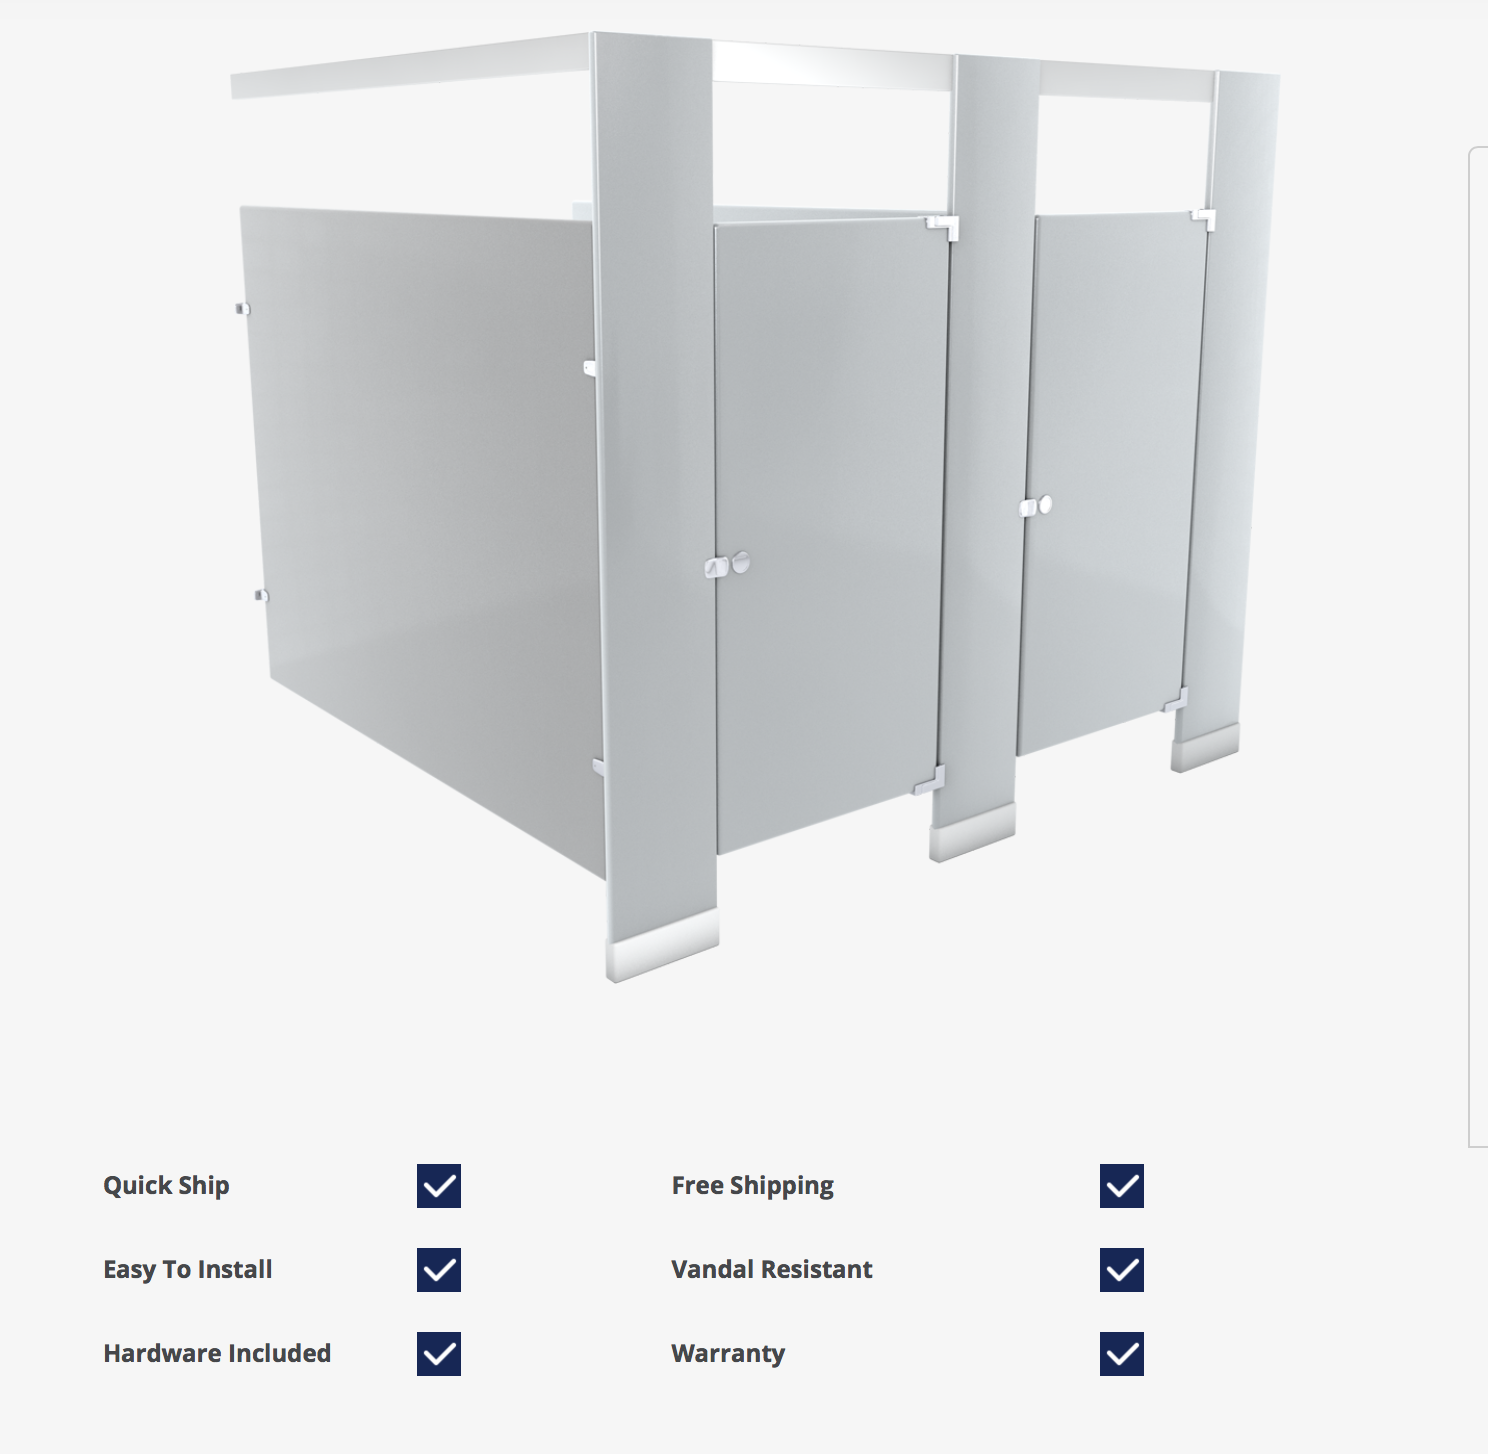 Stainless Steel Bathroom Stalls Property: BATHROOM PARTITIONS AND TOILET PARTITIONS